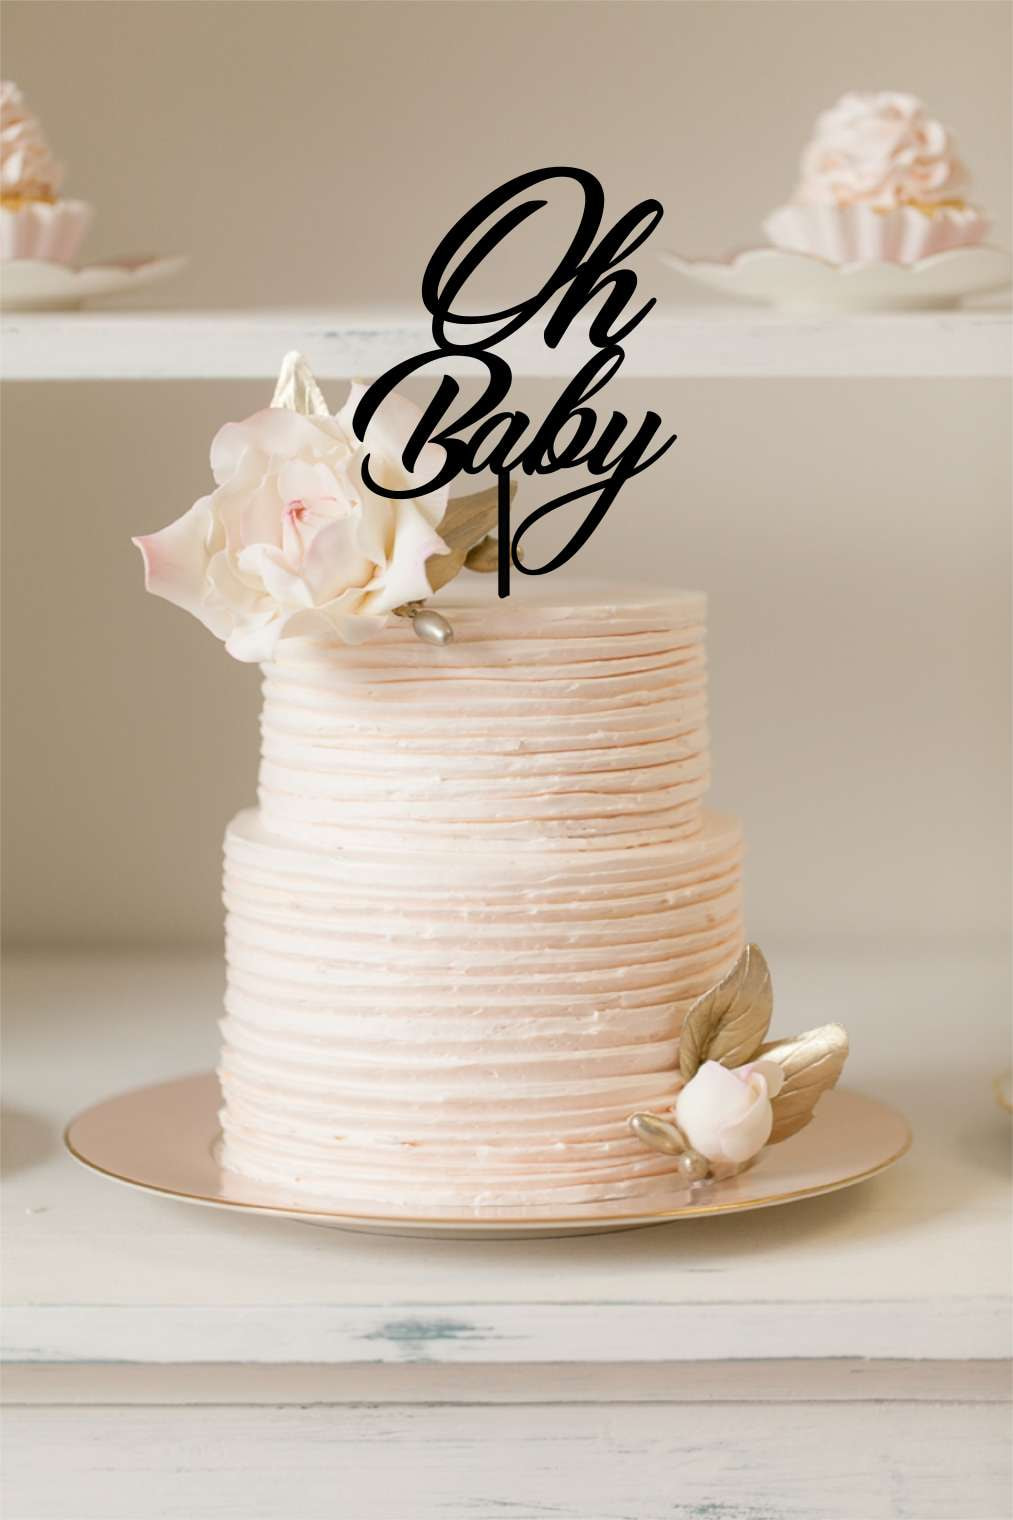 Cake Topper - Oh Baby - Silver Belle Design